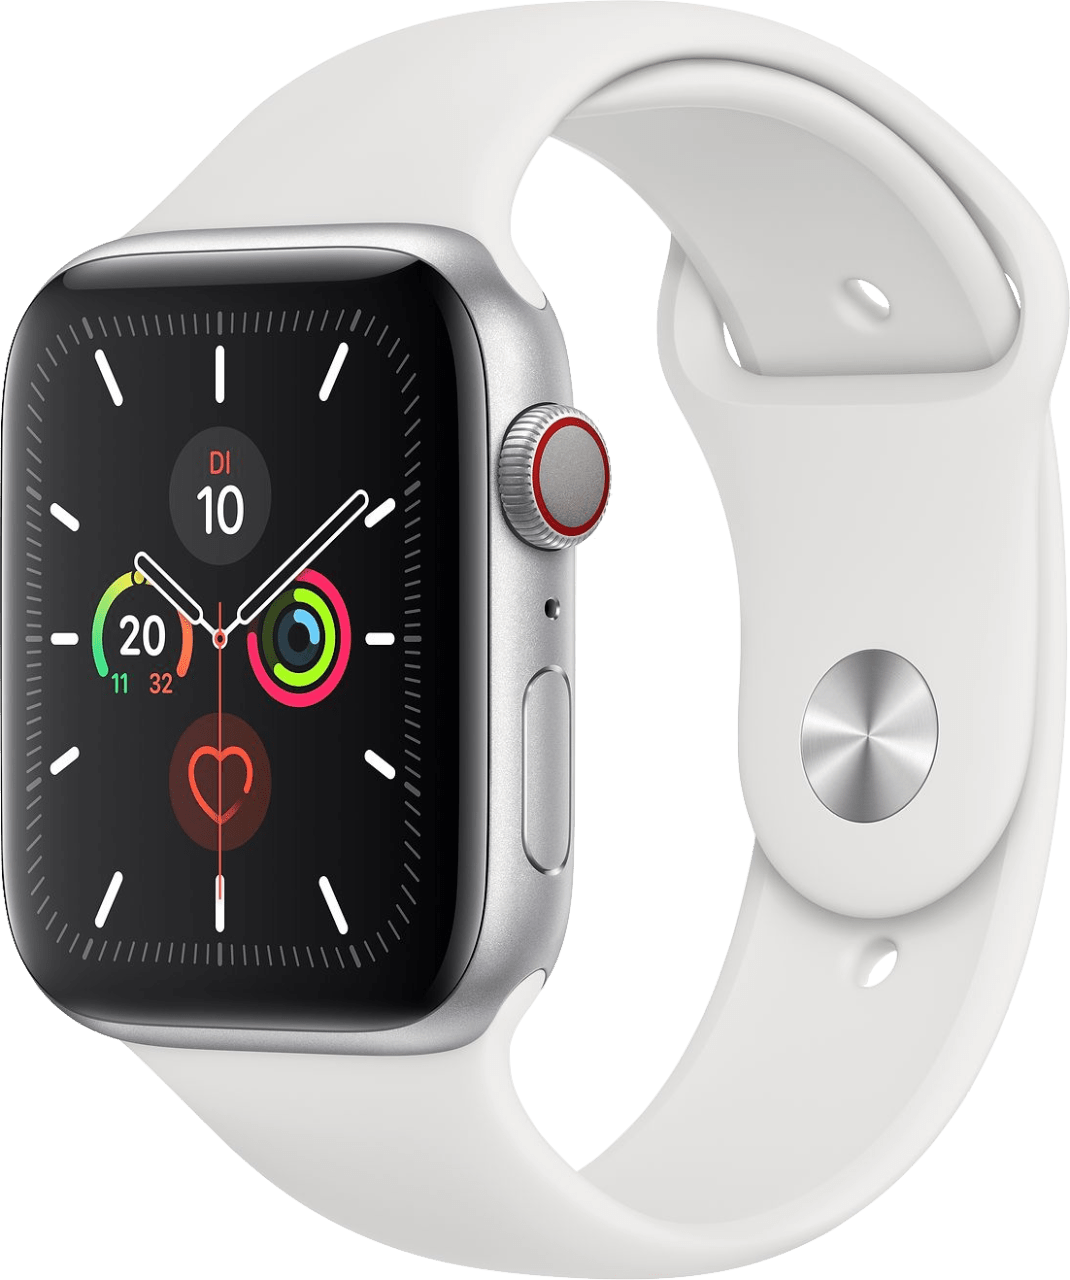 Weiß Apple Watch Series 5 GPS + Cellular, 44mm.2